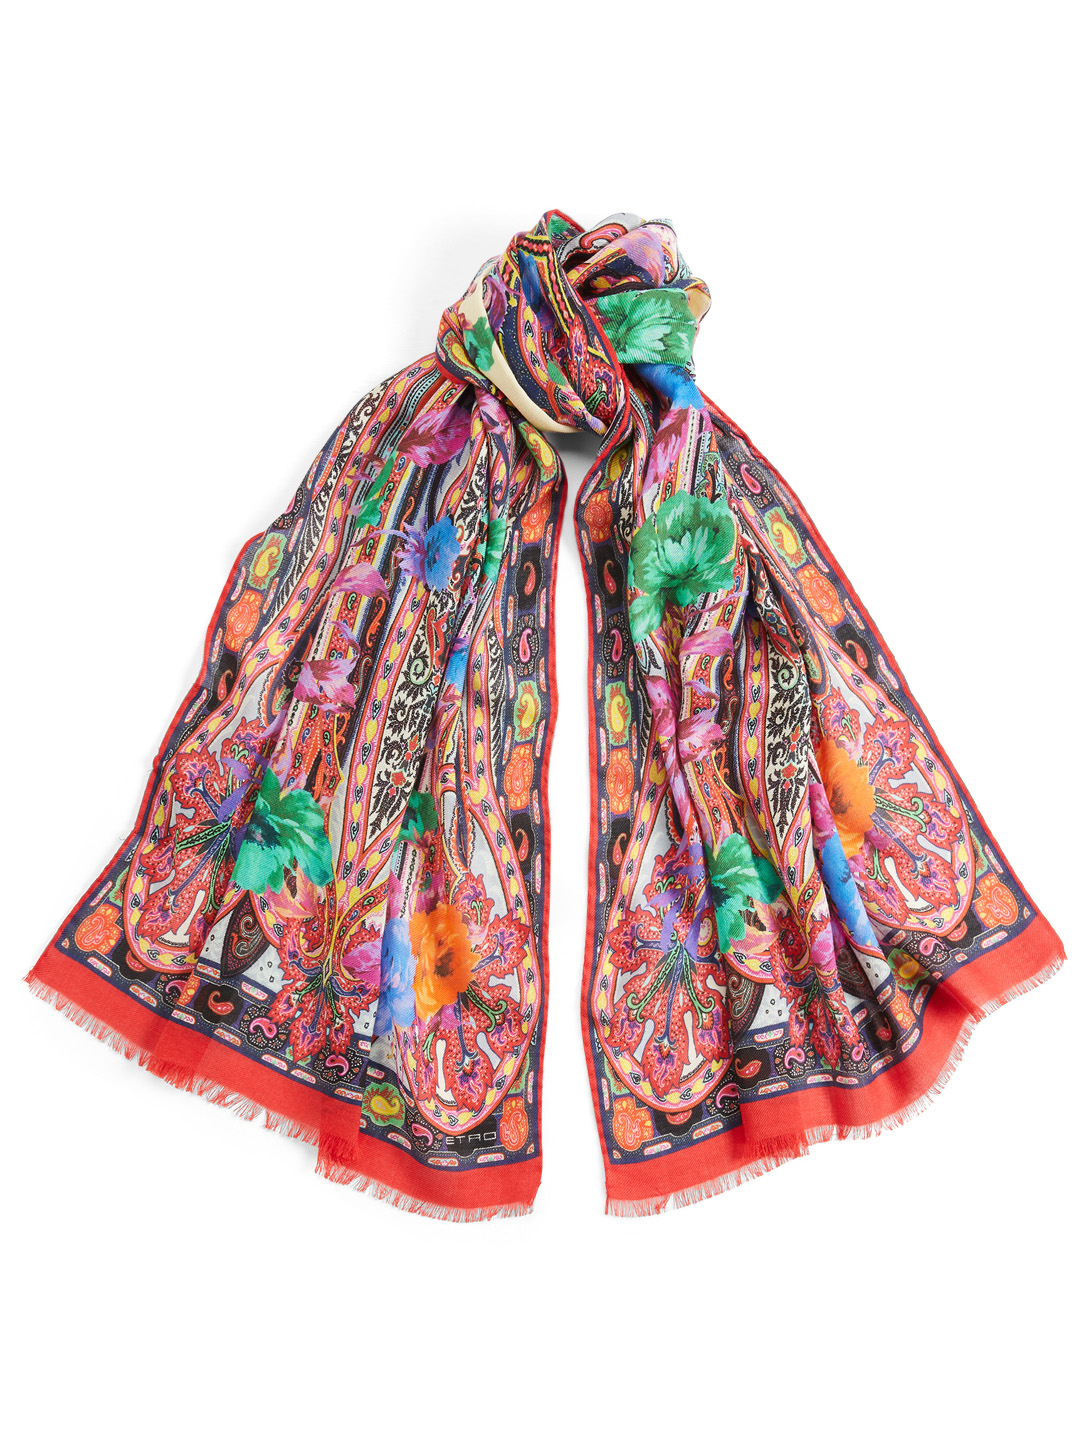 ETRO Wool And Silk Scarf In Floral Print Women's White